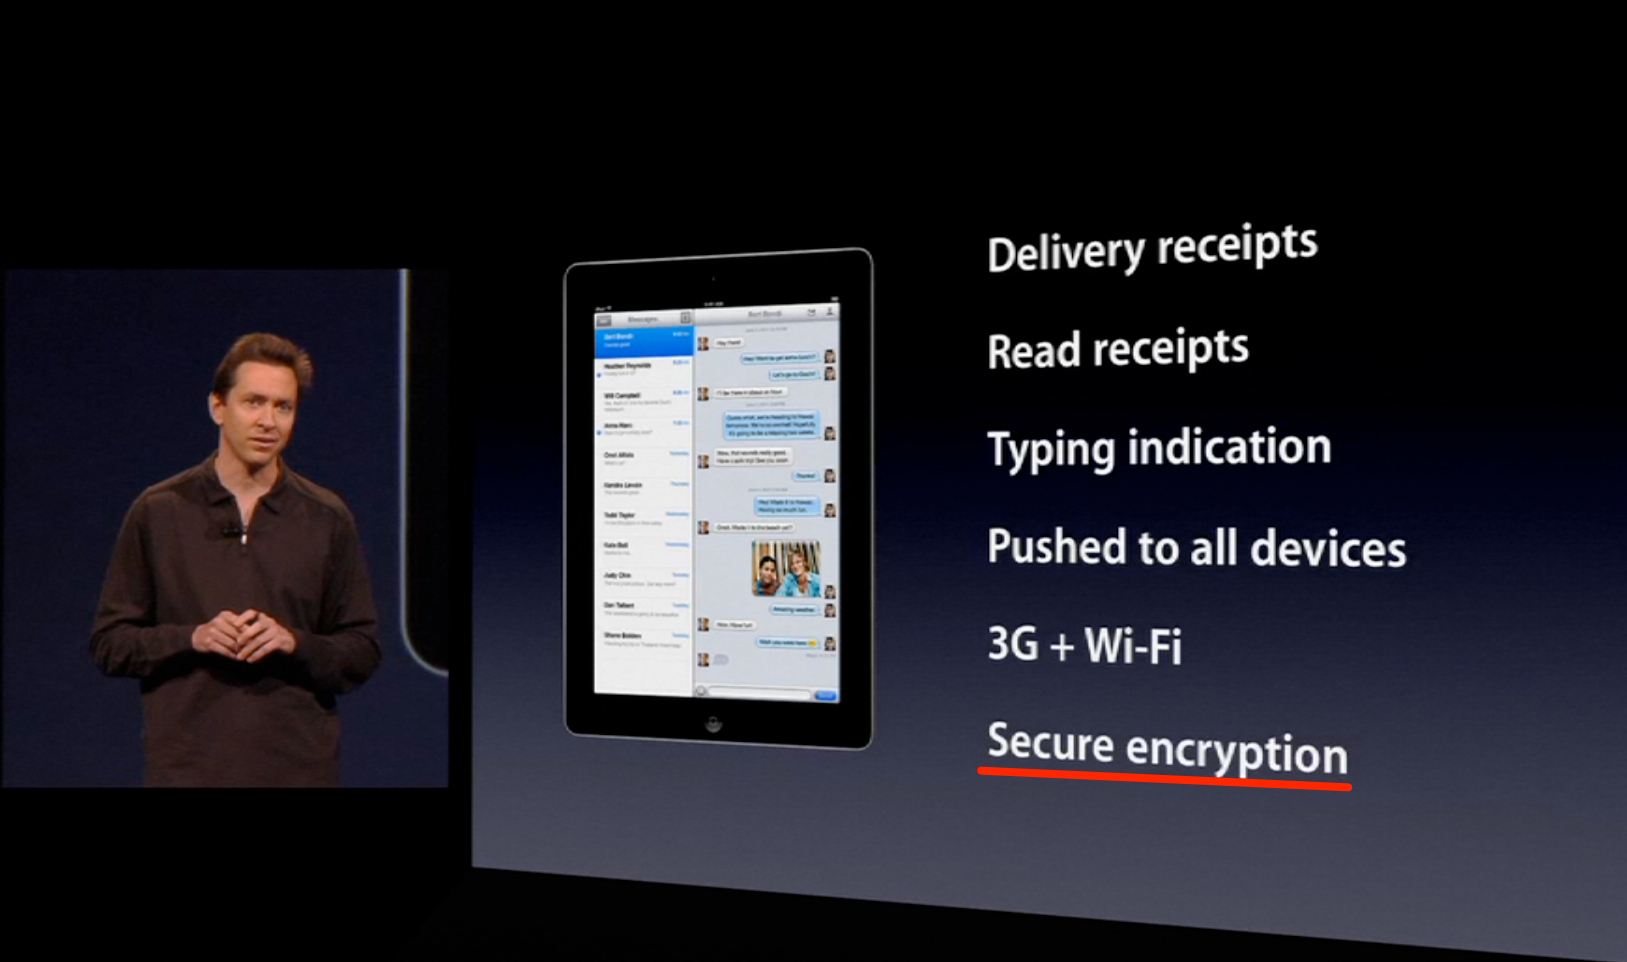 iMessage secure encryption